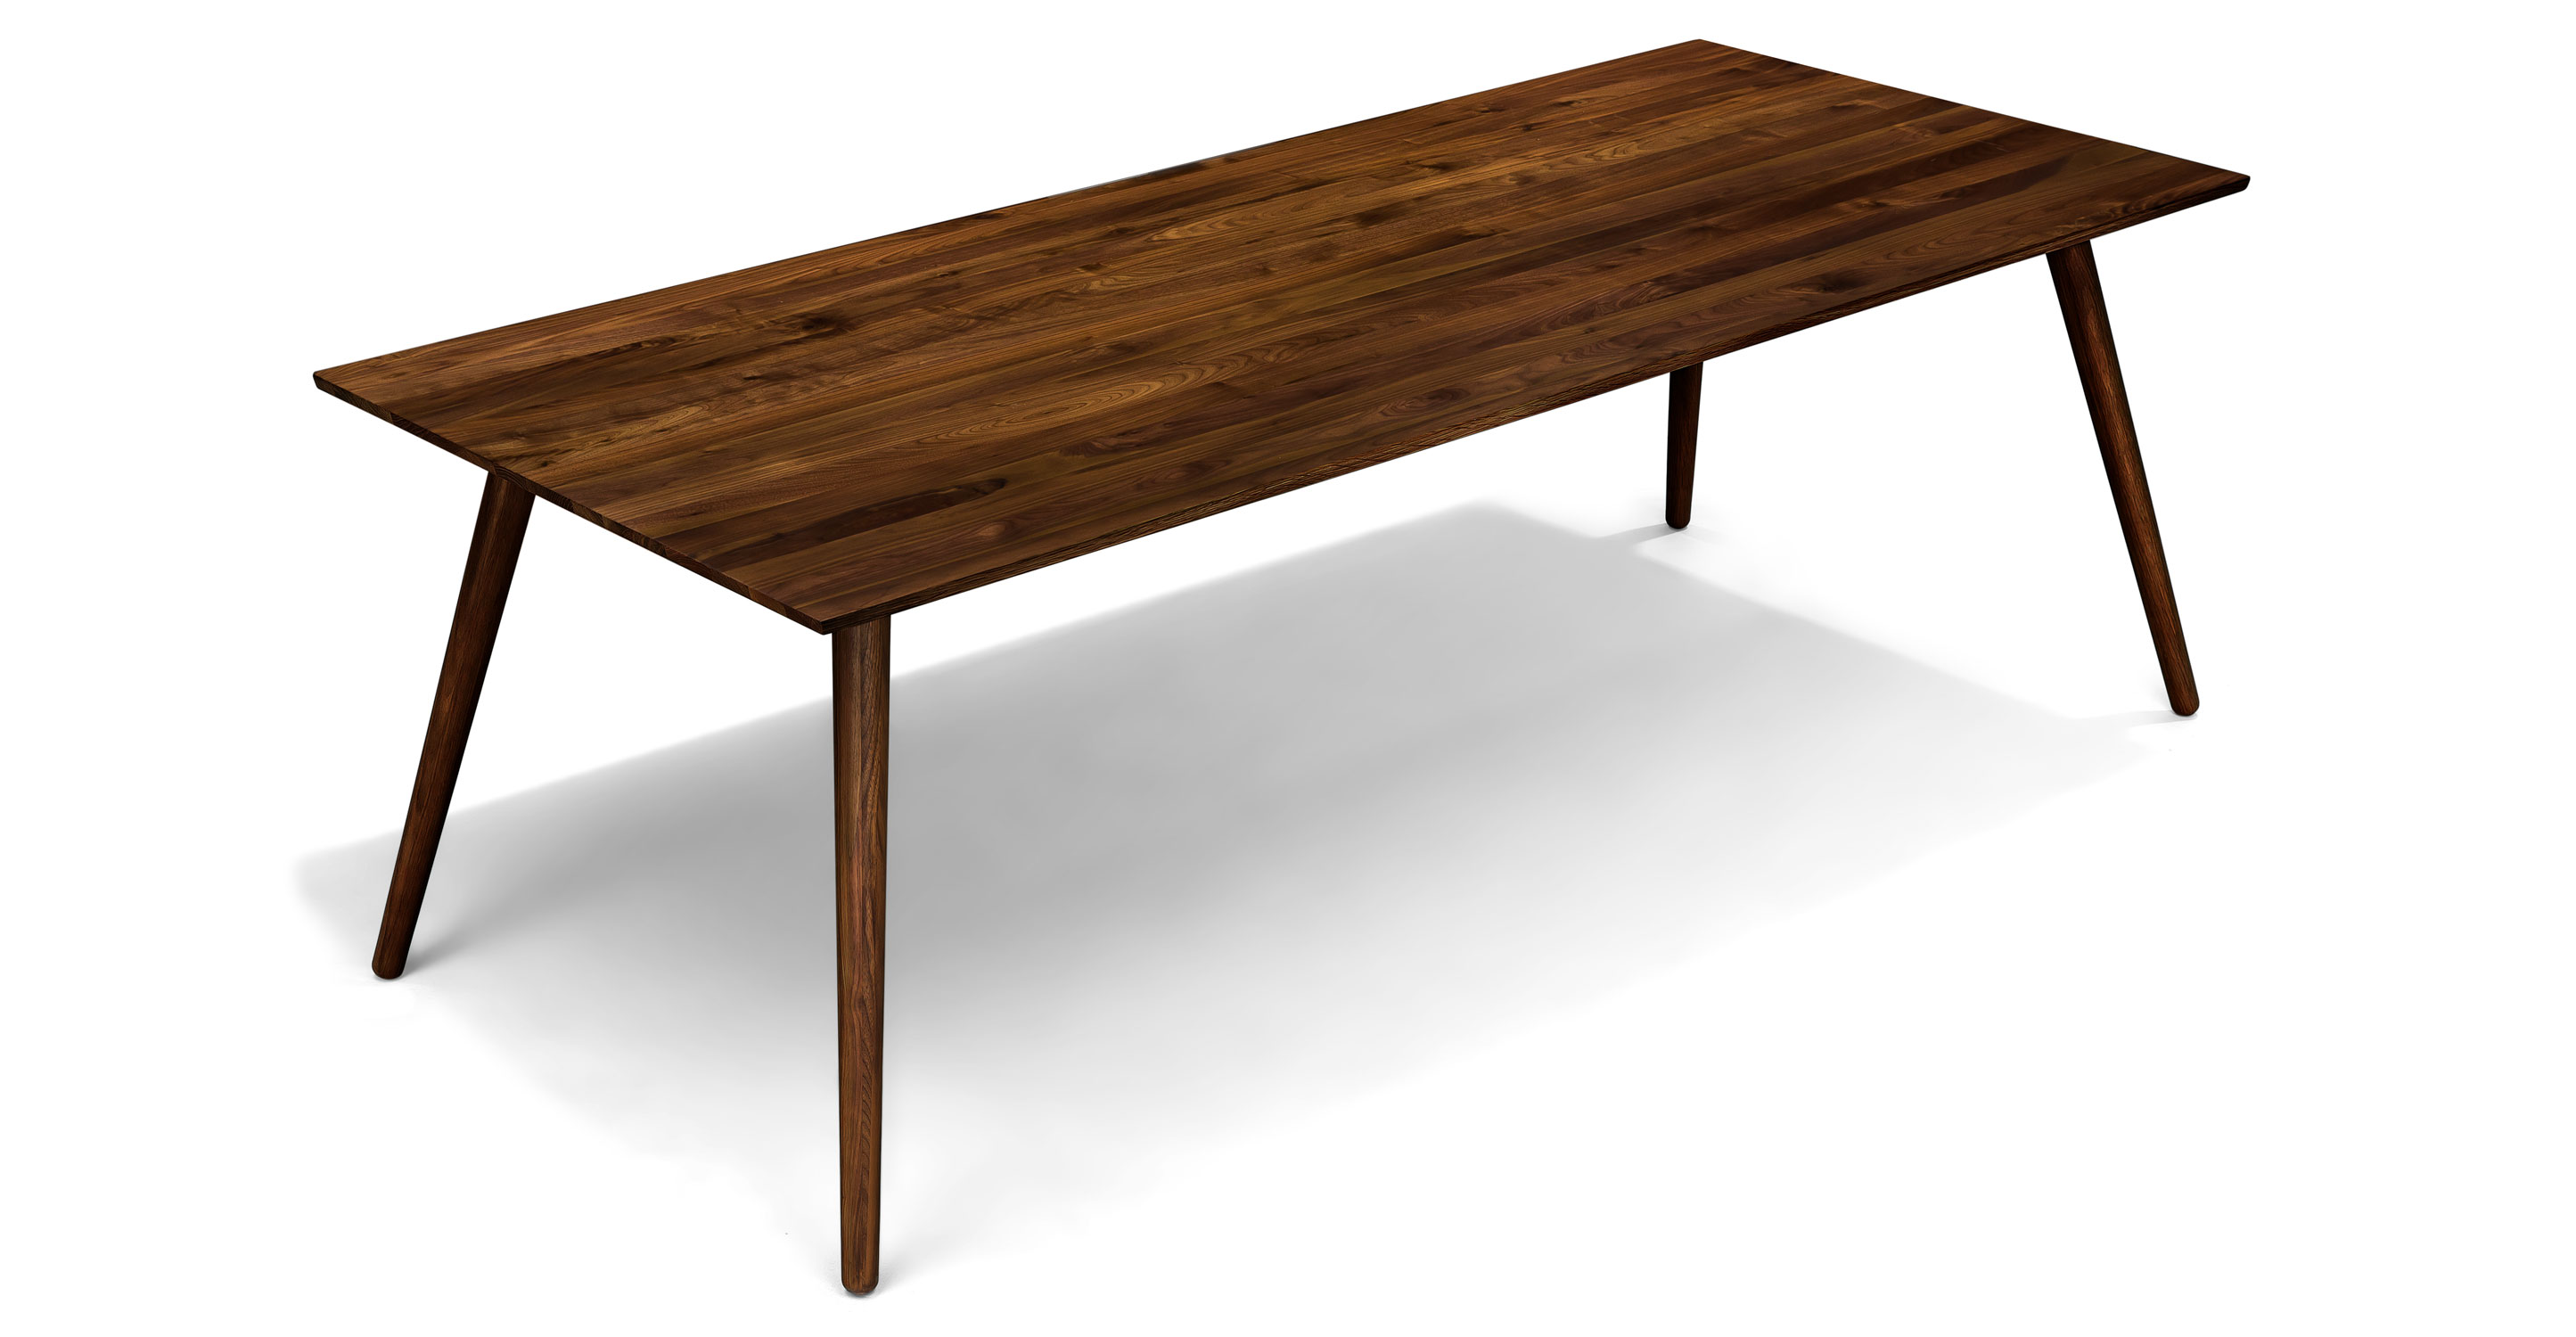 Seno elongated dining table for eight costa rican furniture for Dinner table for 8